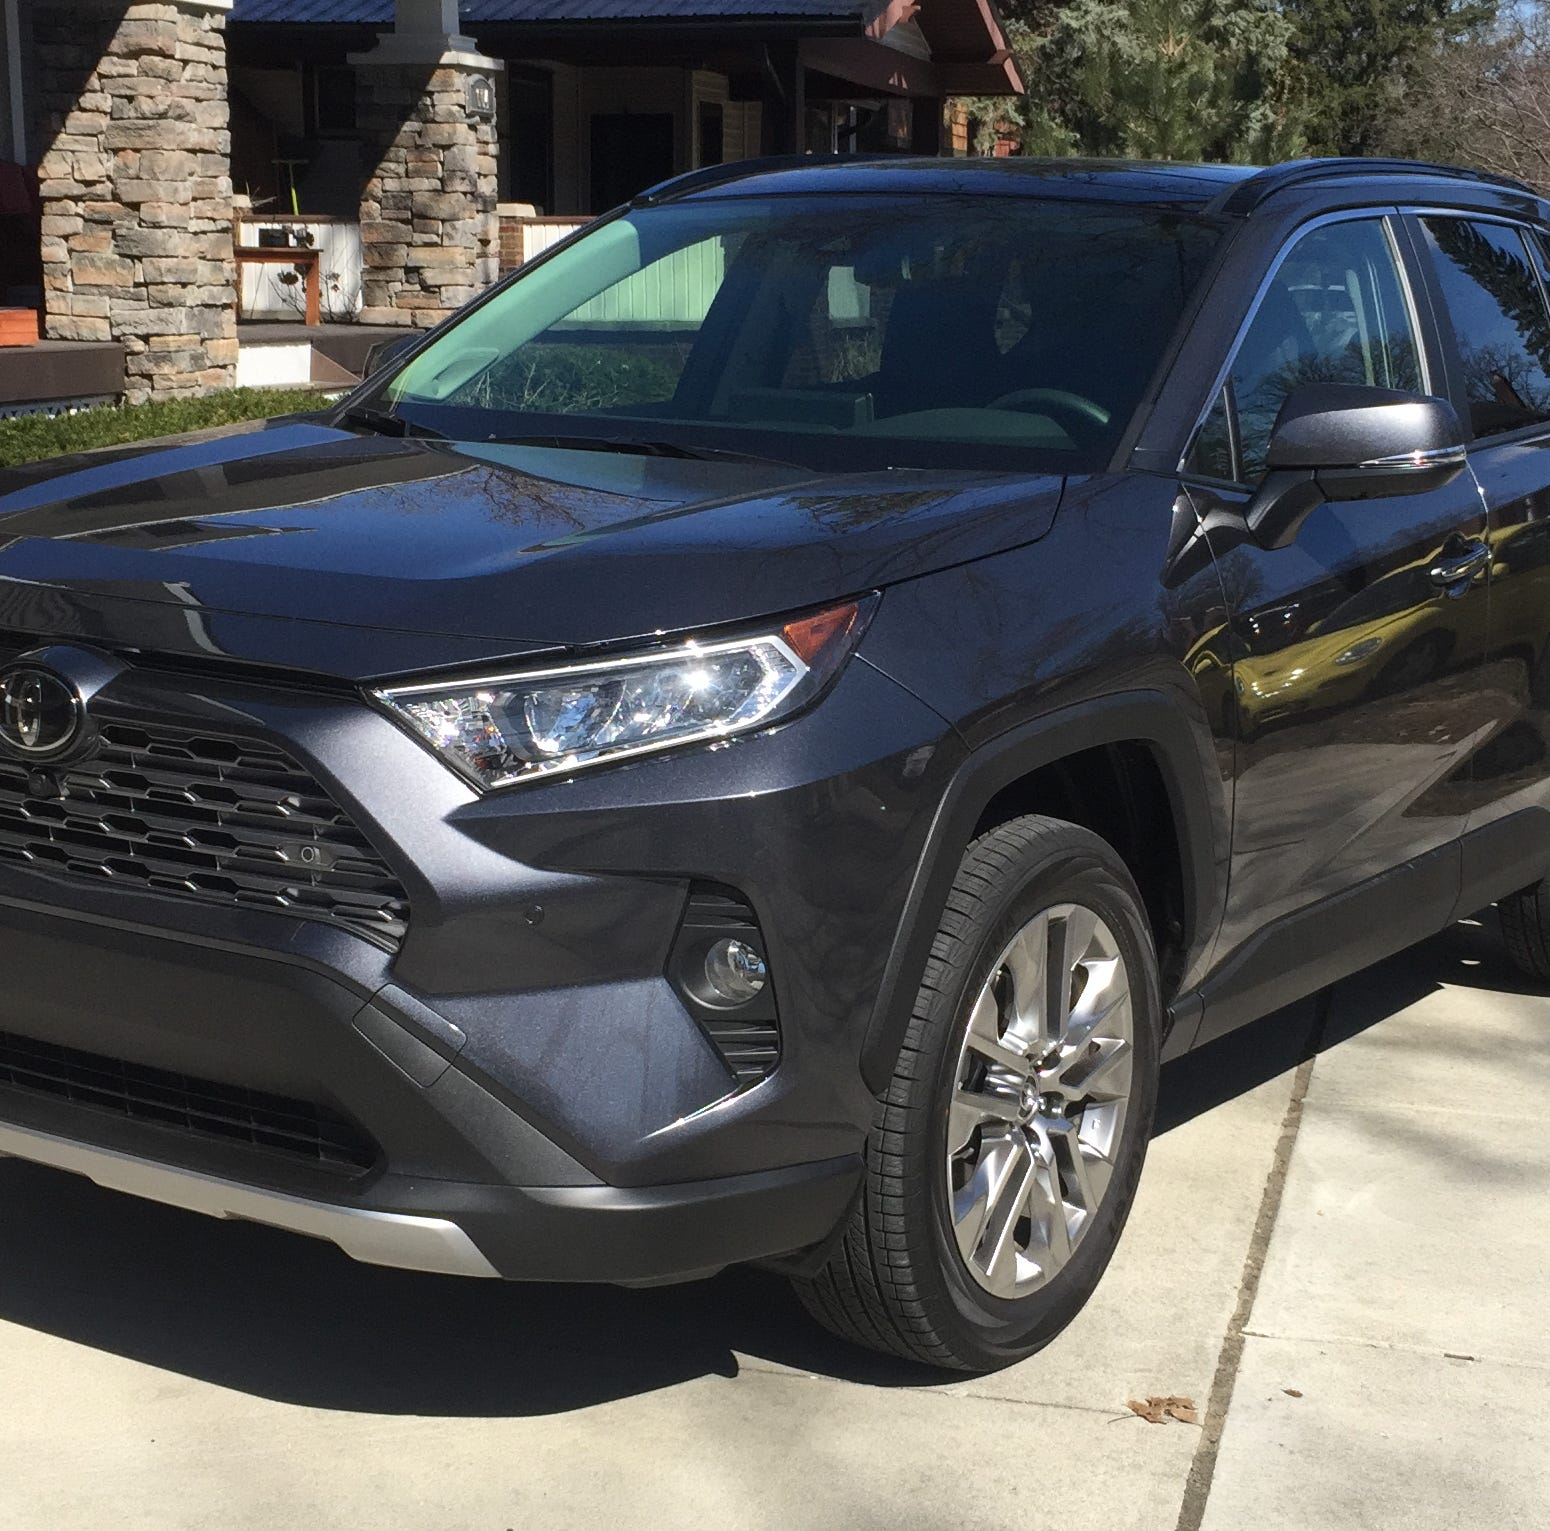 2019 Toyota RAV4 SUV adds rugged looks to sedan-like ride